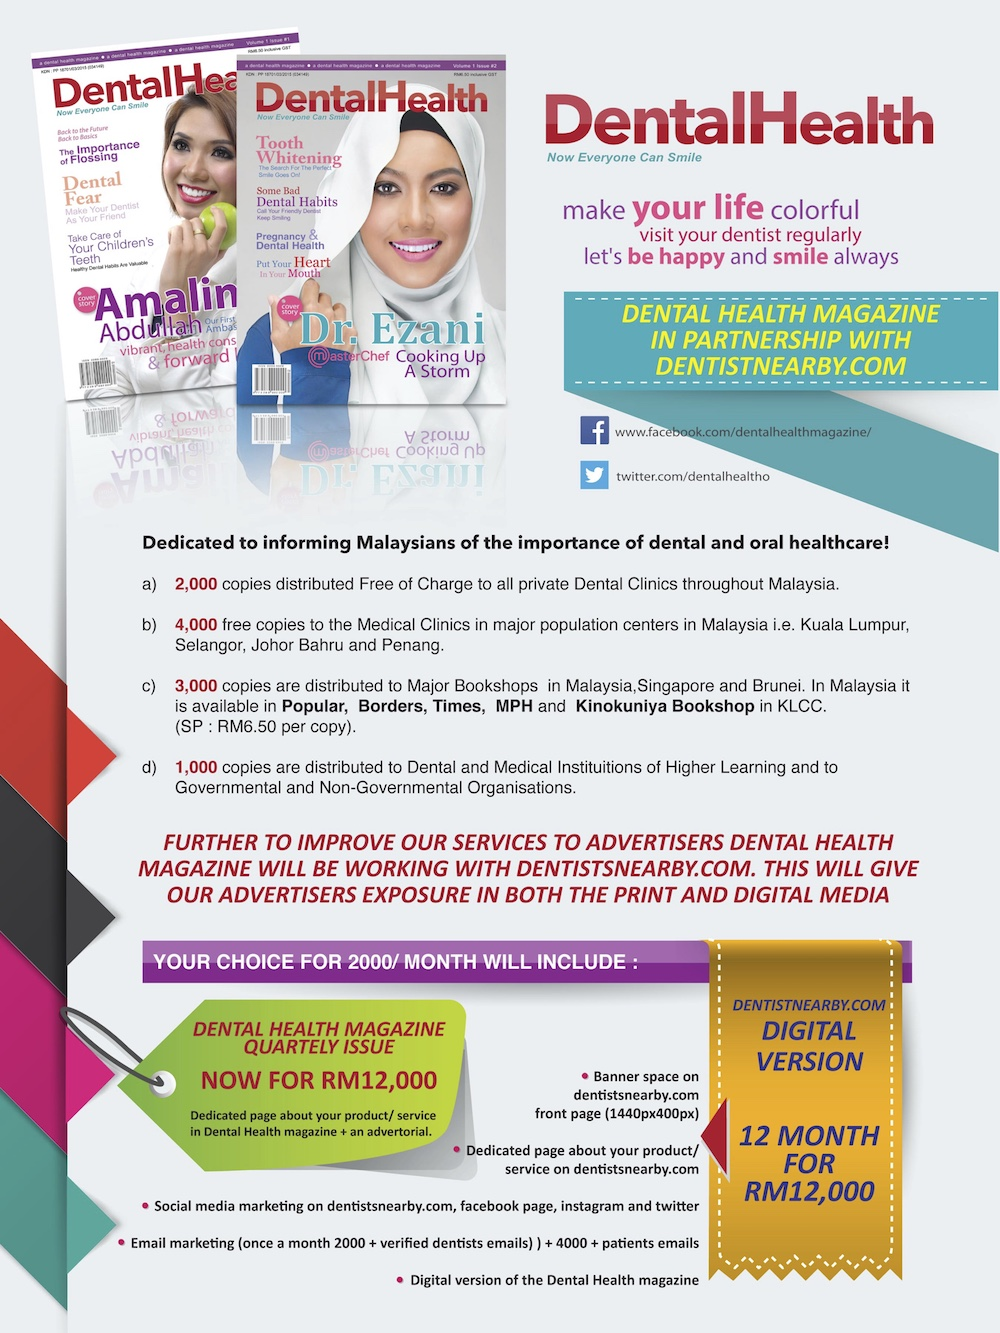 dental-health-magazine-media-kit-1